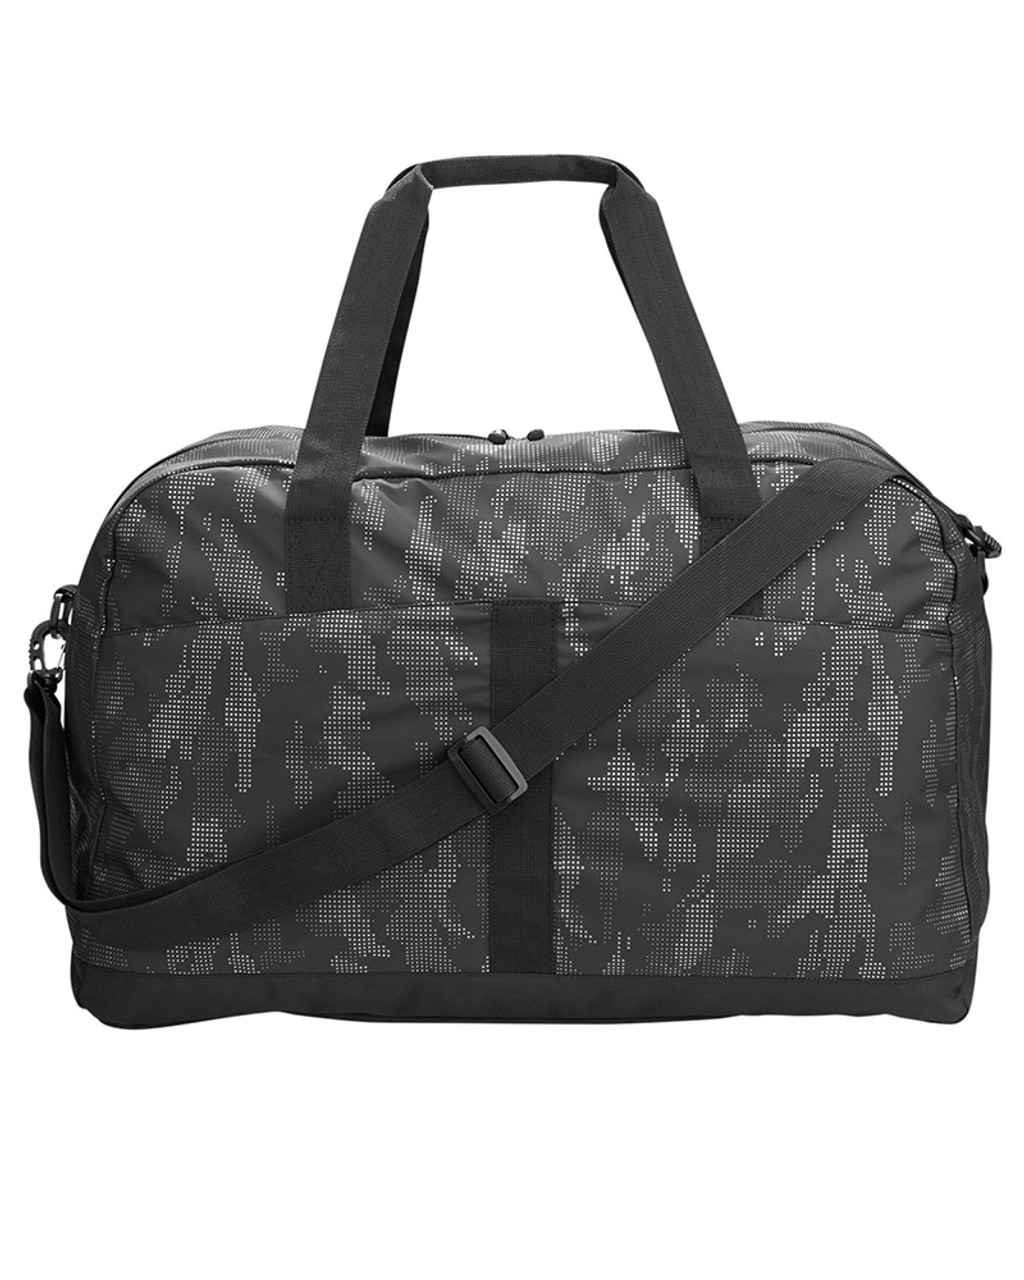 Black/Carbon - NE902 North End Rotate Reflective Duffel Bag | Blankclothing.ca